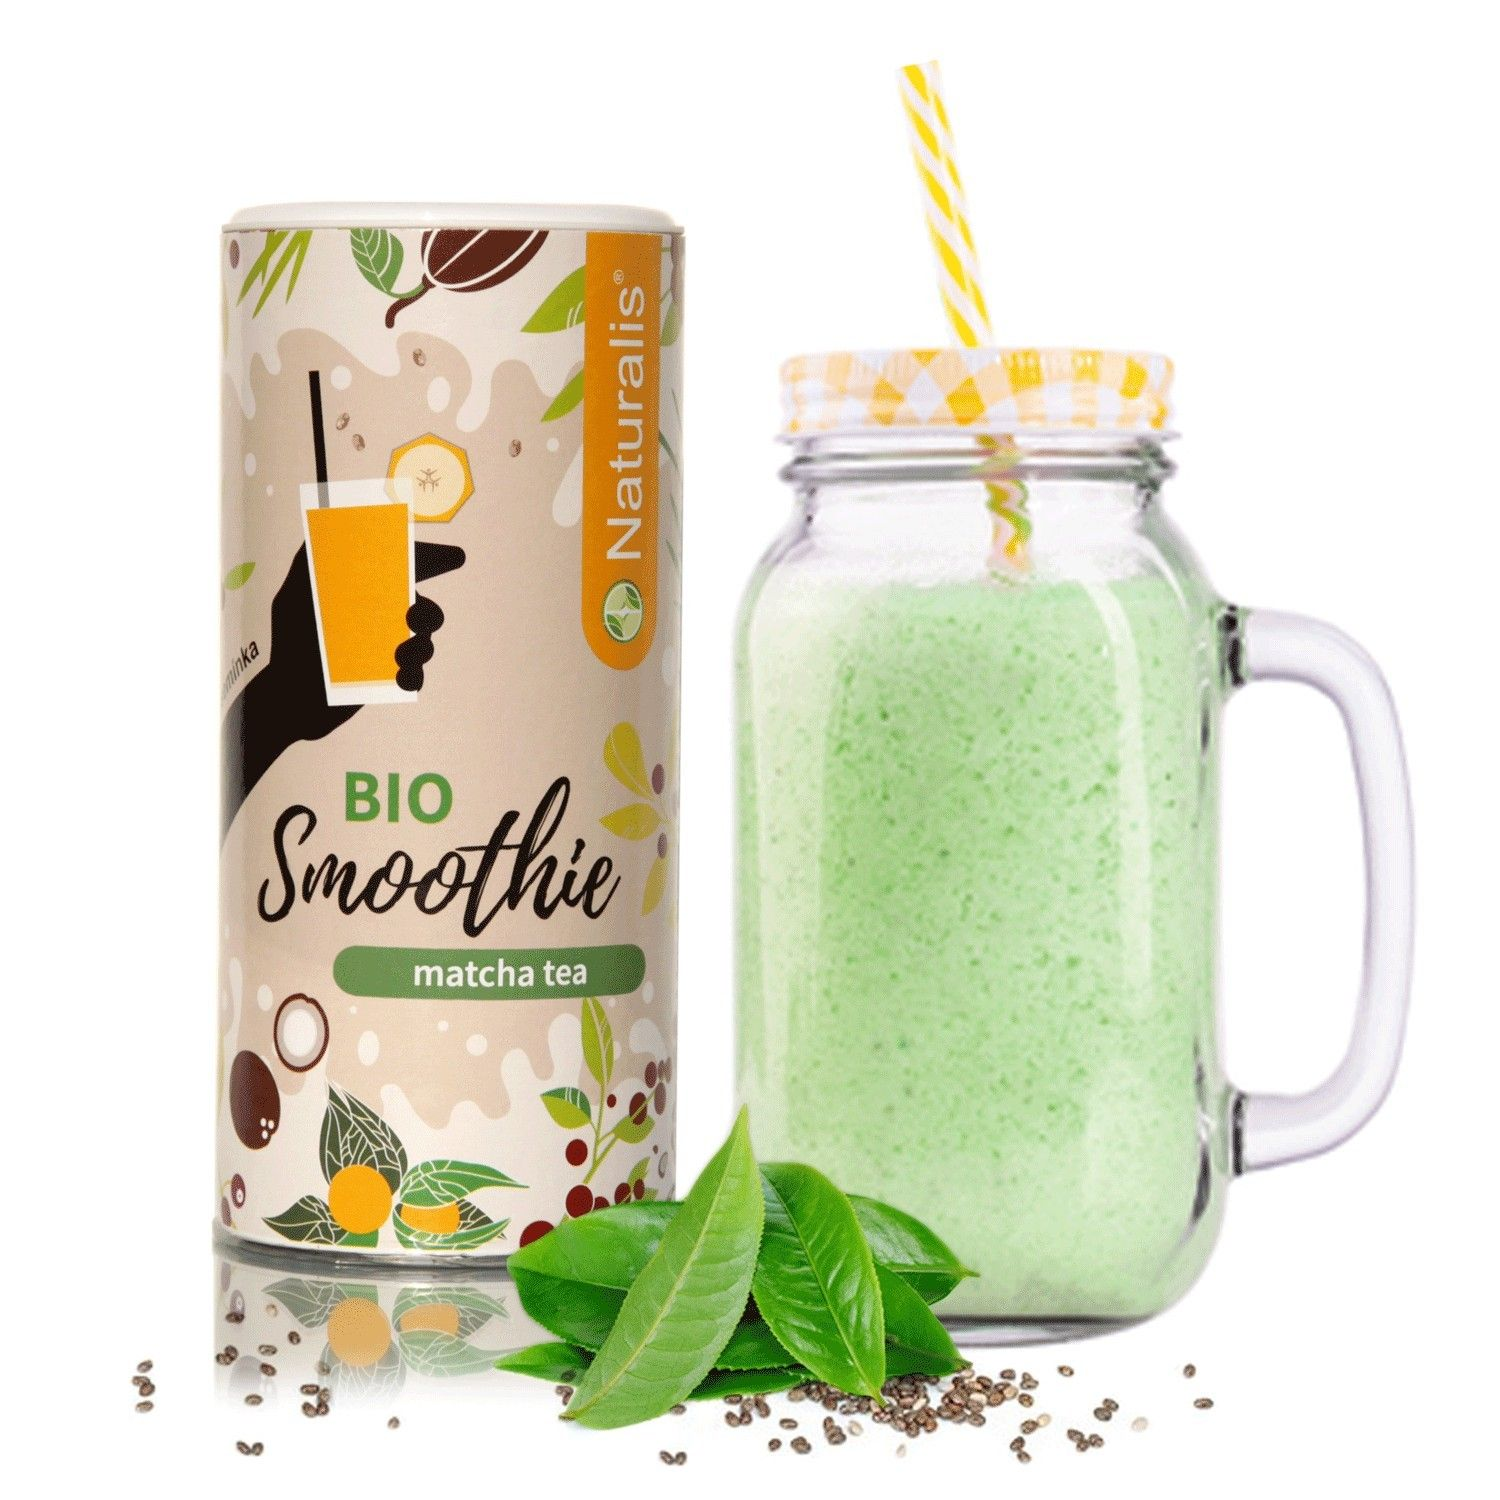 Smoothie Naturalis s Matcha Tea BIO - 180g